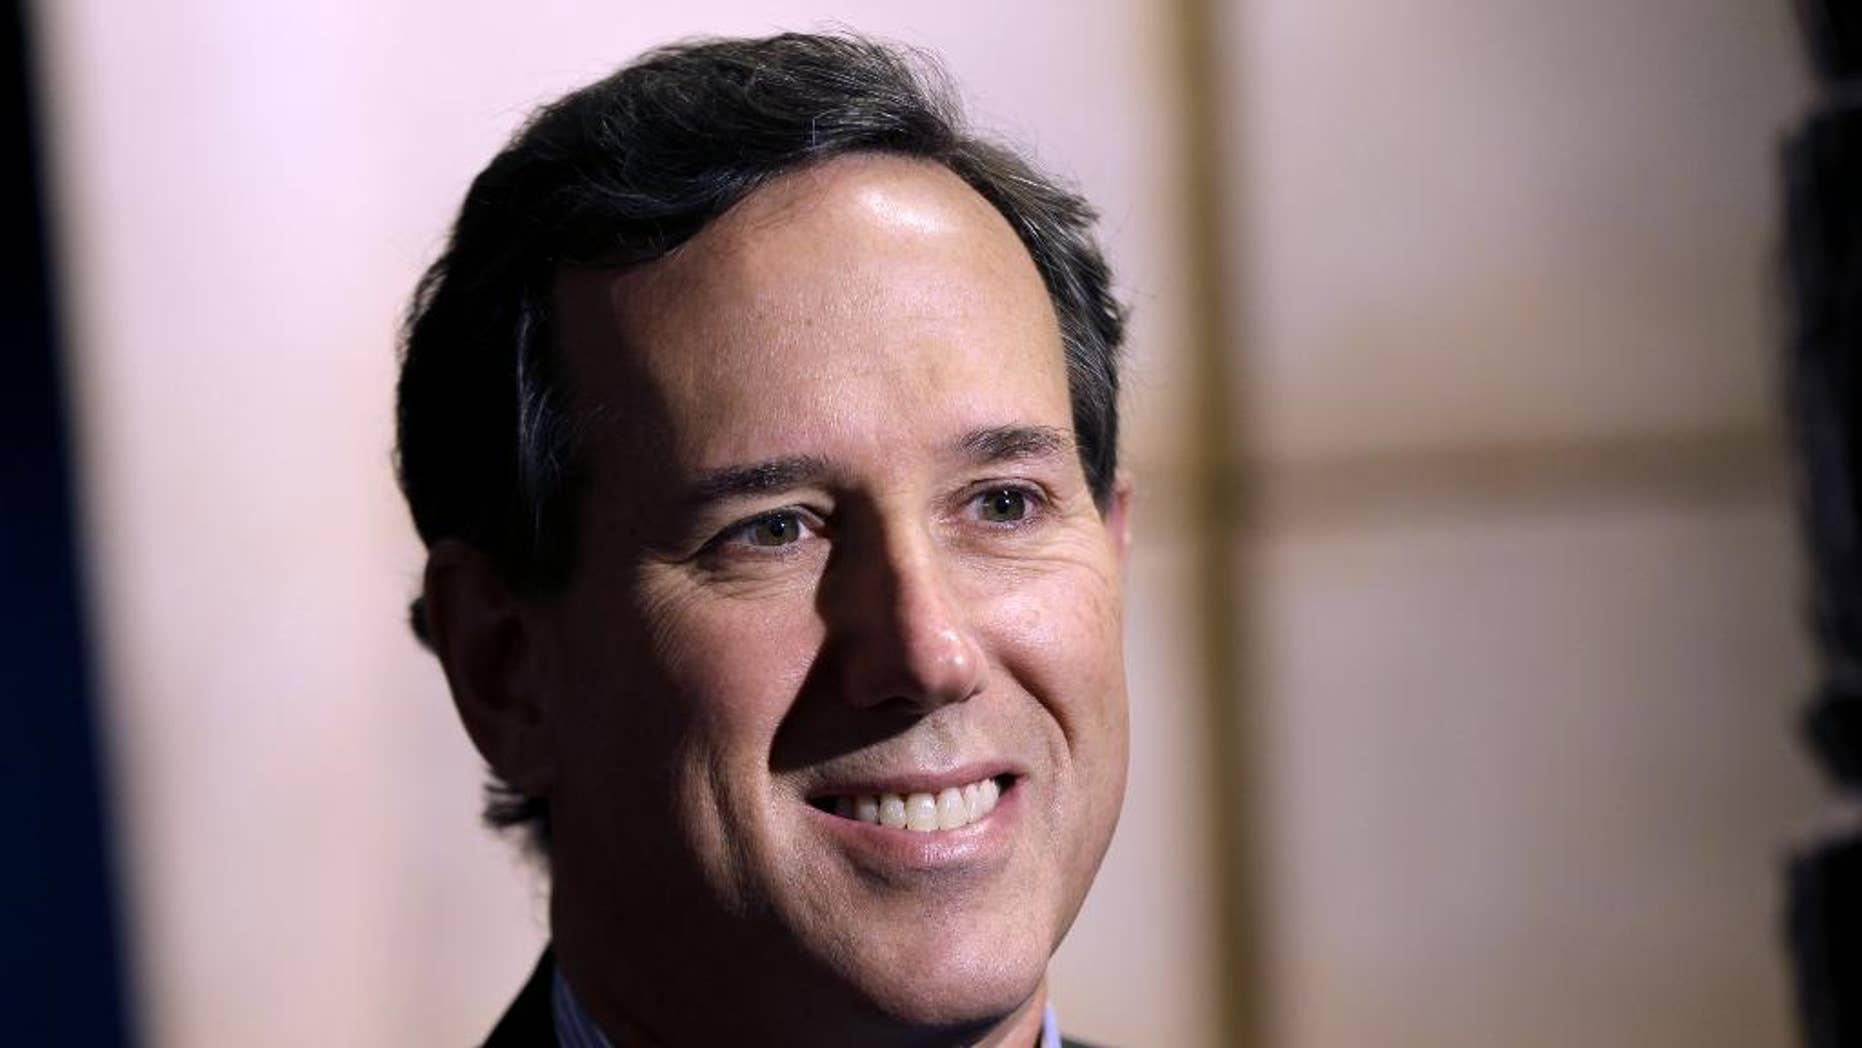 FILE - In this Nov. 18, 2013, file photo, former Pennsylvania Sen. Rick Santorum is seen in New York. Getting ready to run for president means working through a hefty checklist of activities long before most people are paying attention to the contest ahead. Prep work, positioning and auditioning don't wait for the primary season. Just about everyone thinking about running for president is kicking it into gear now, slowpokes included.  (AP Photo/Seth Wenig, File)